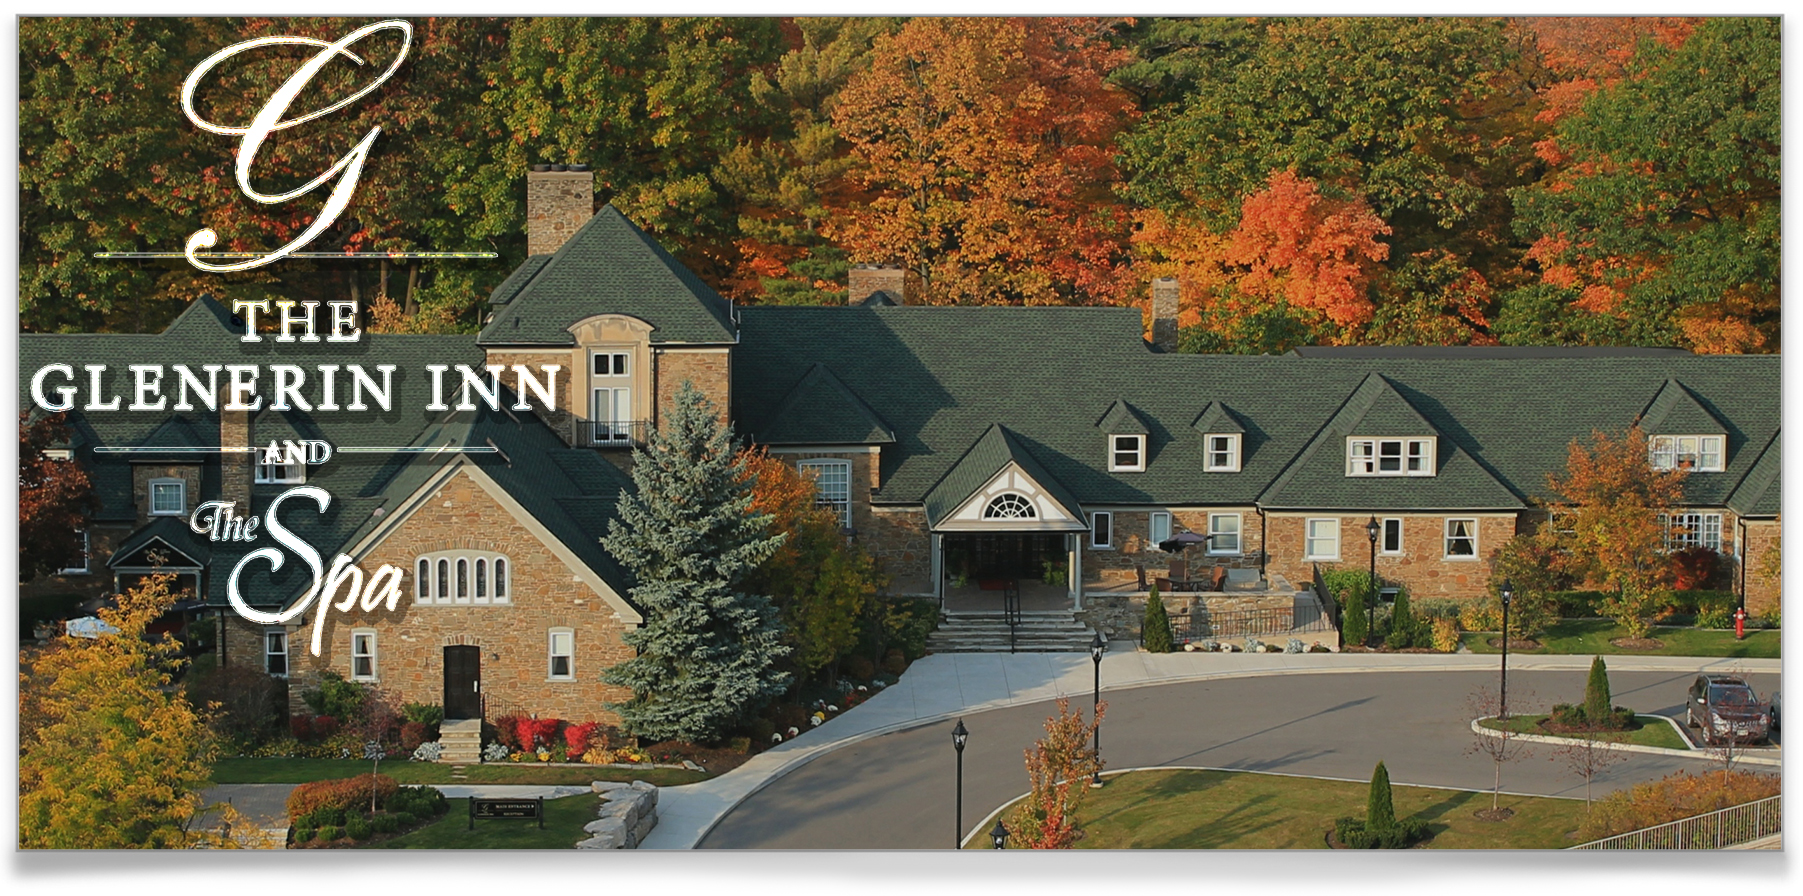 The Glenerin Inn